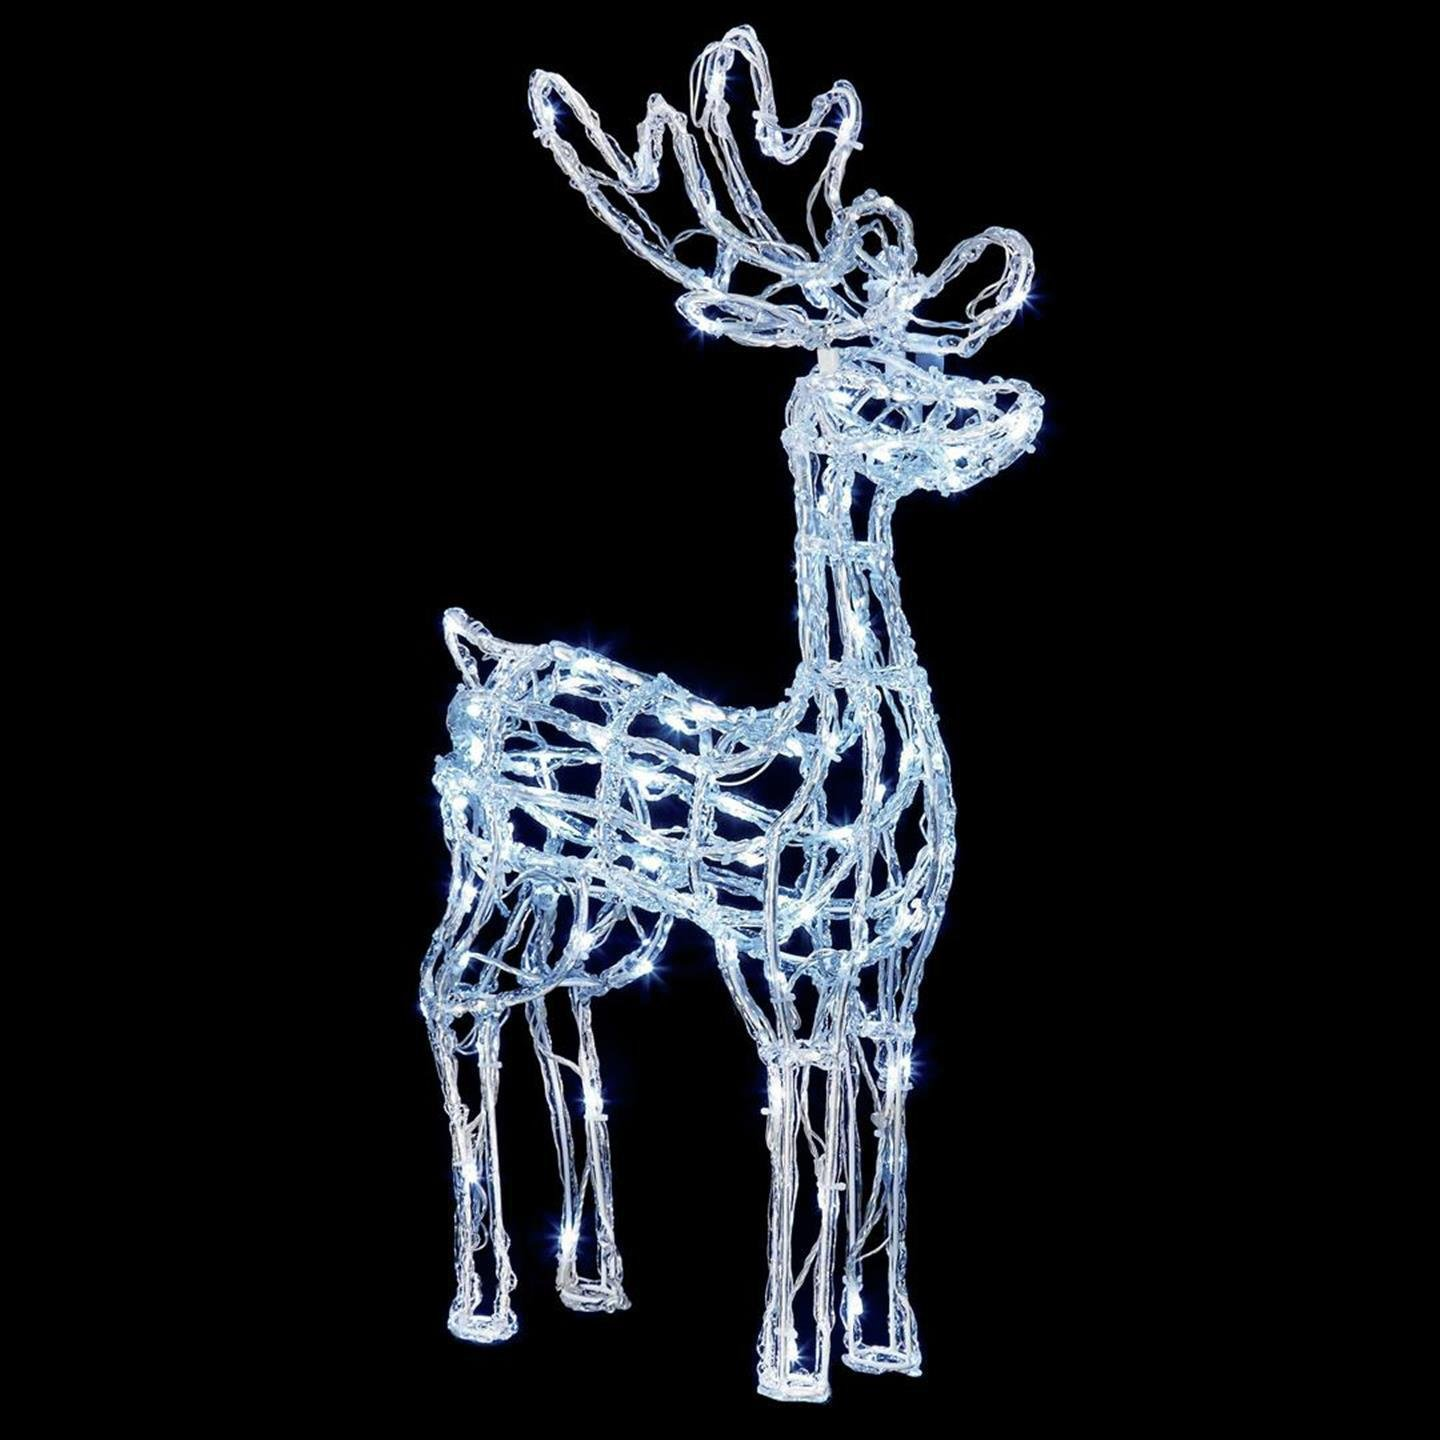 premier-decorations-70cm-white-led-acrylic-standing-reindeer